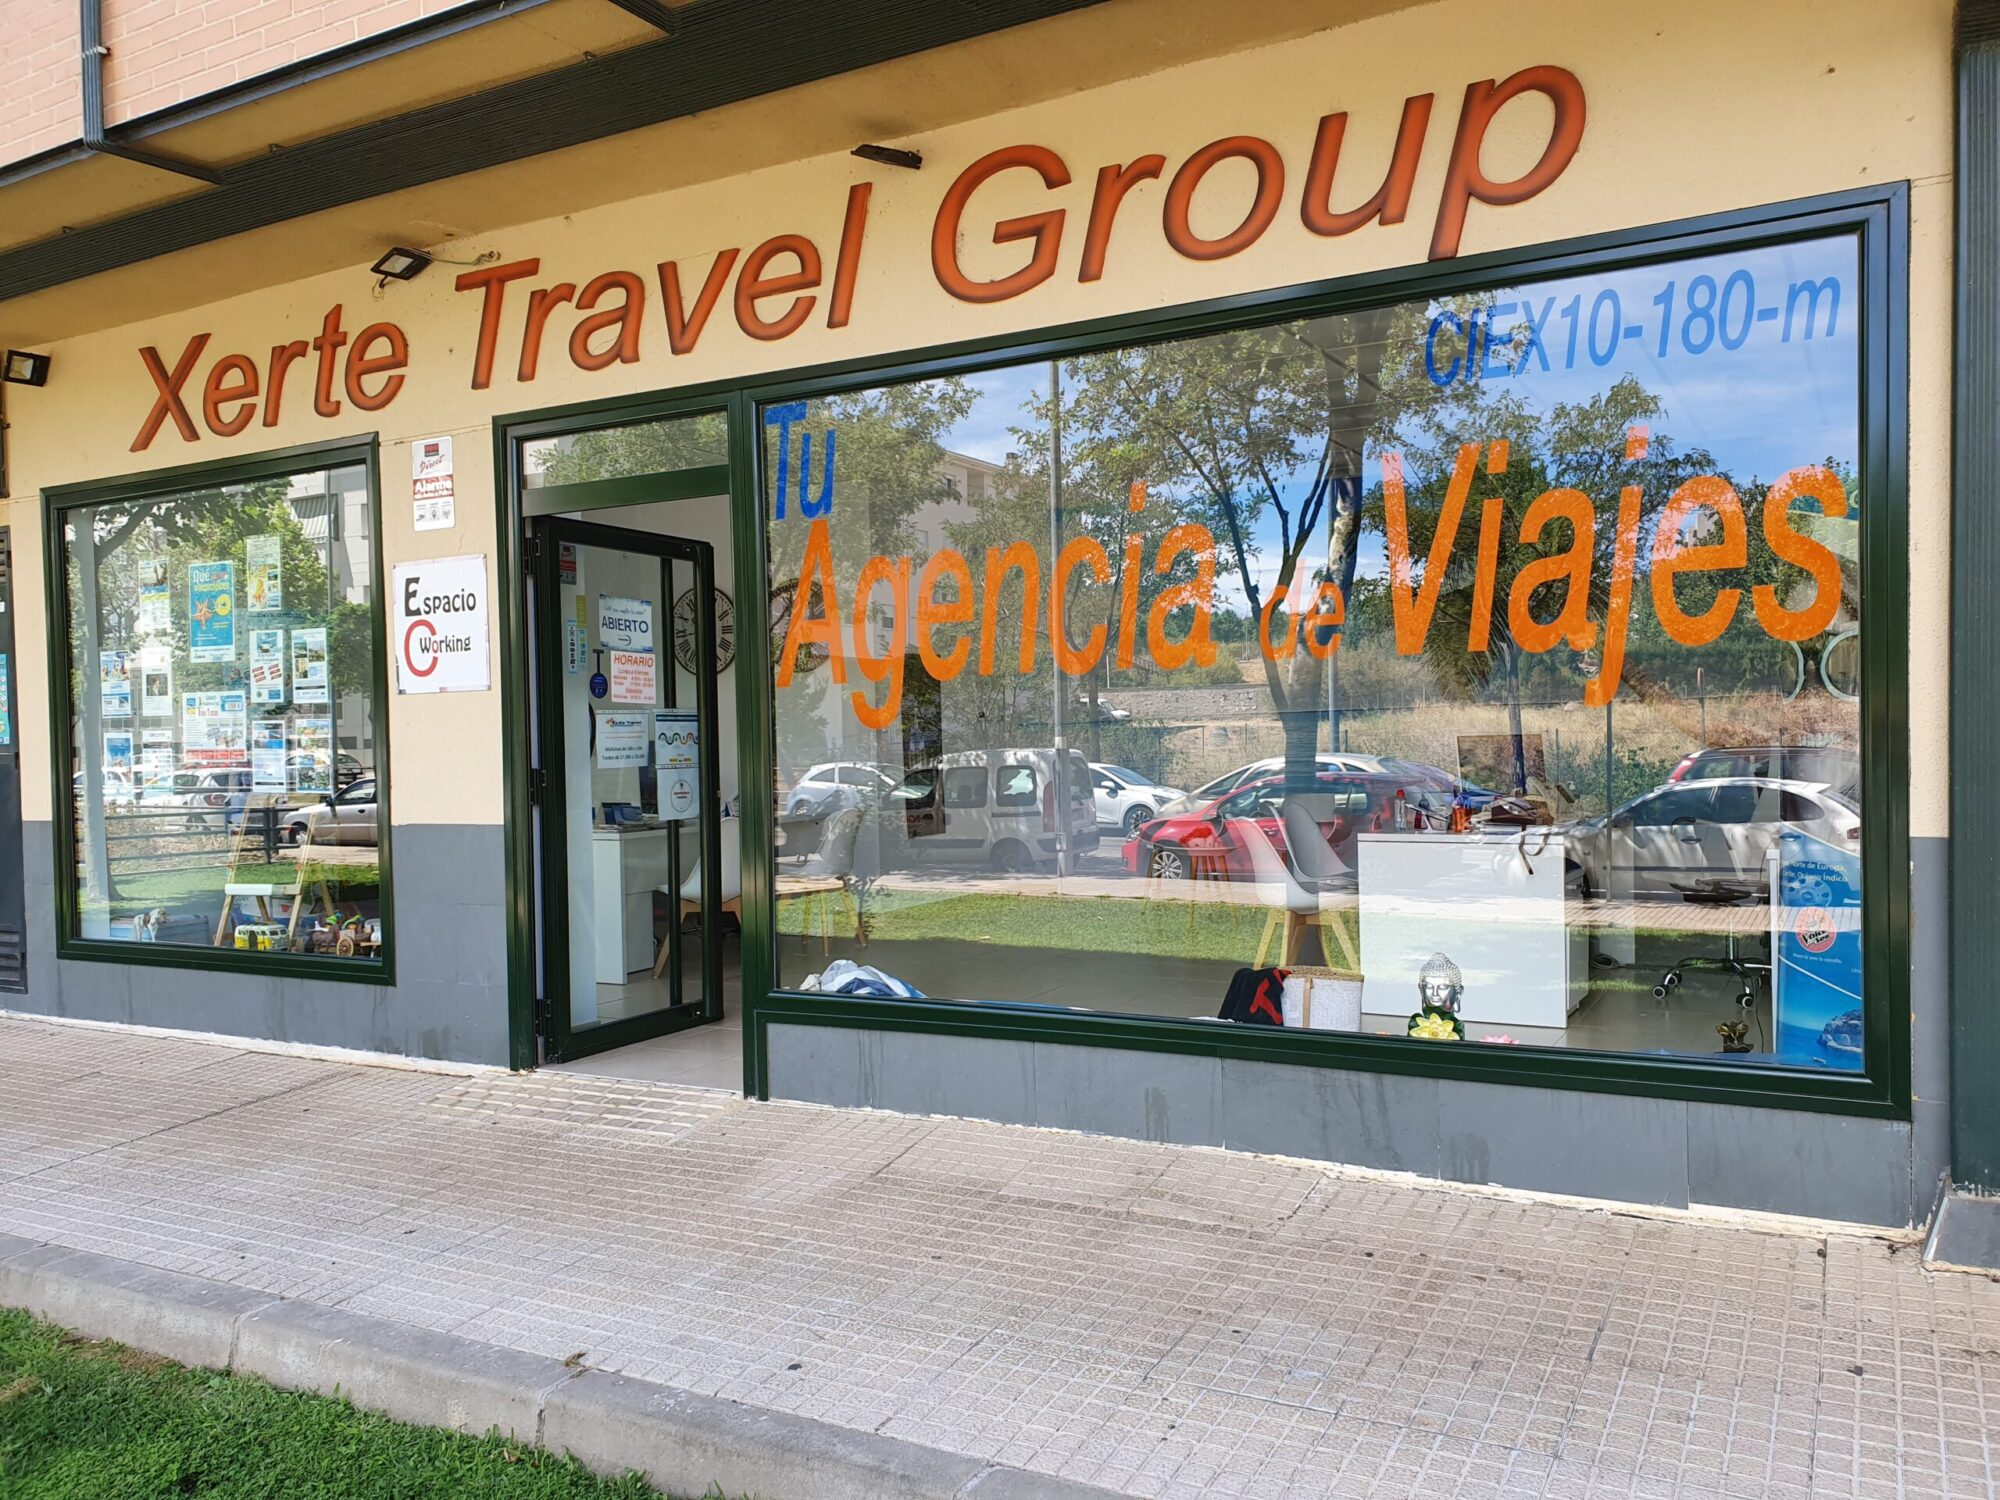 XERTE TRAVEL GROUP